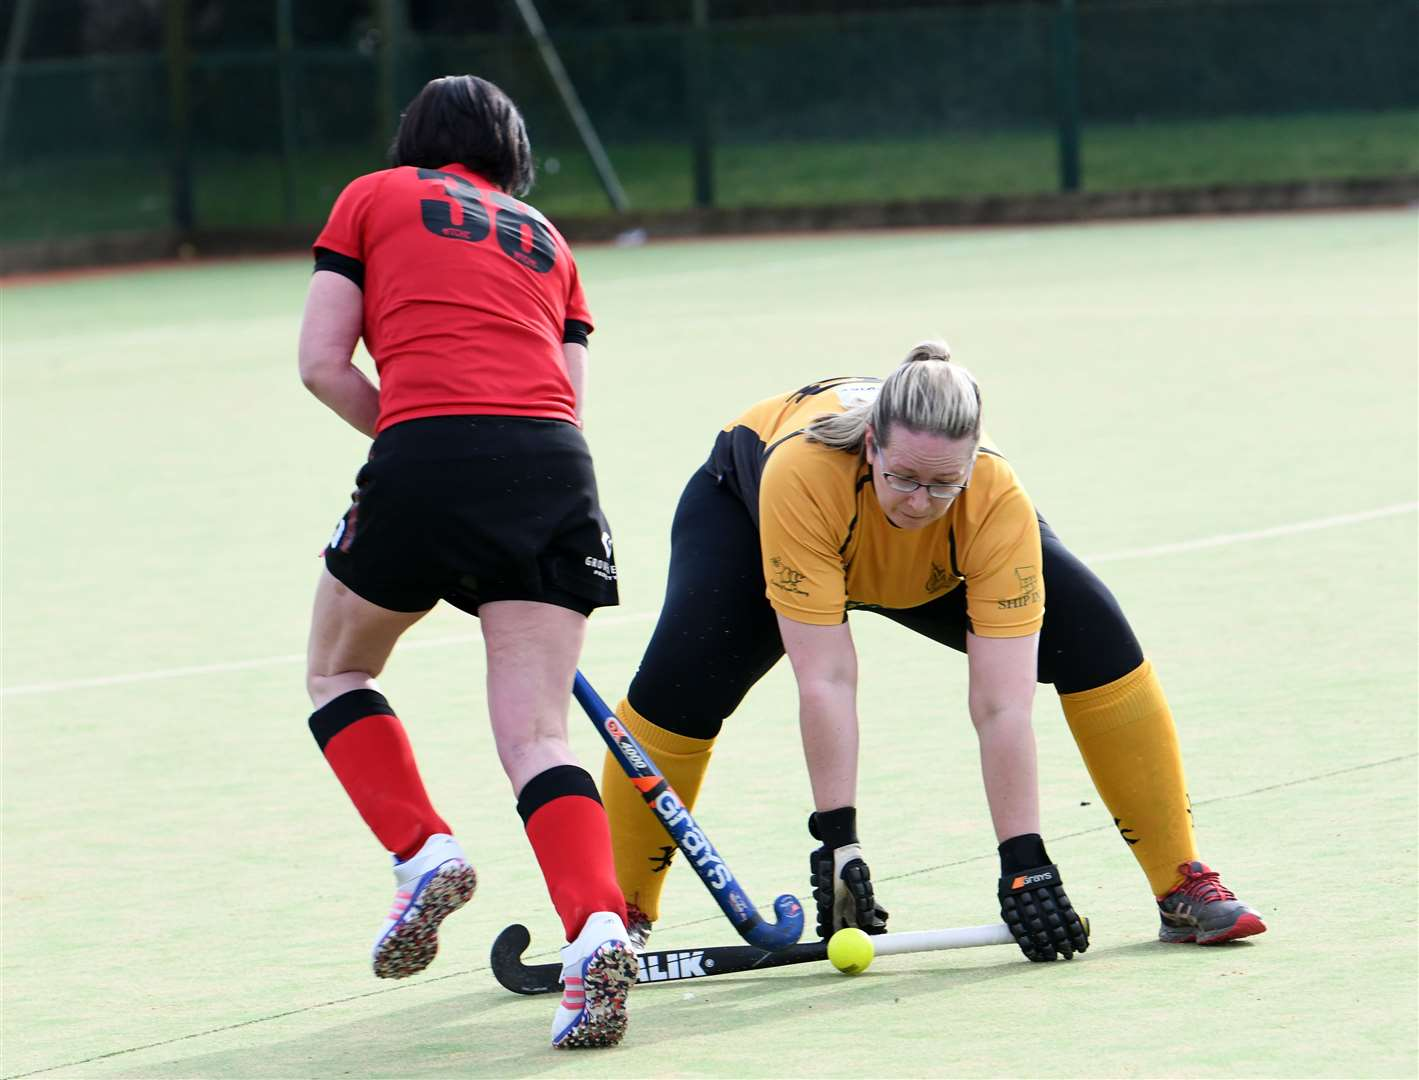 Wisbech Ladies 2nds v March 1st Hockey. (28777826)